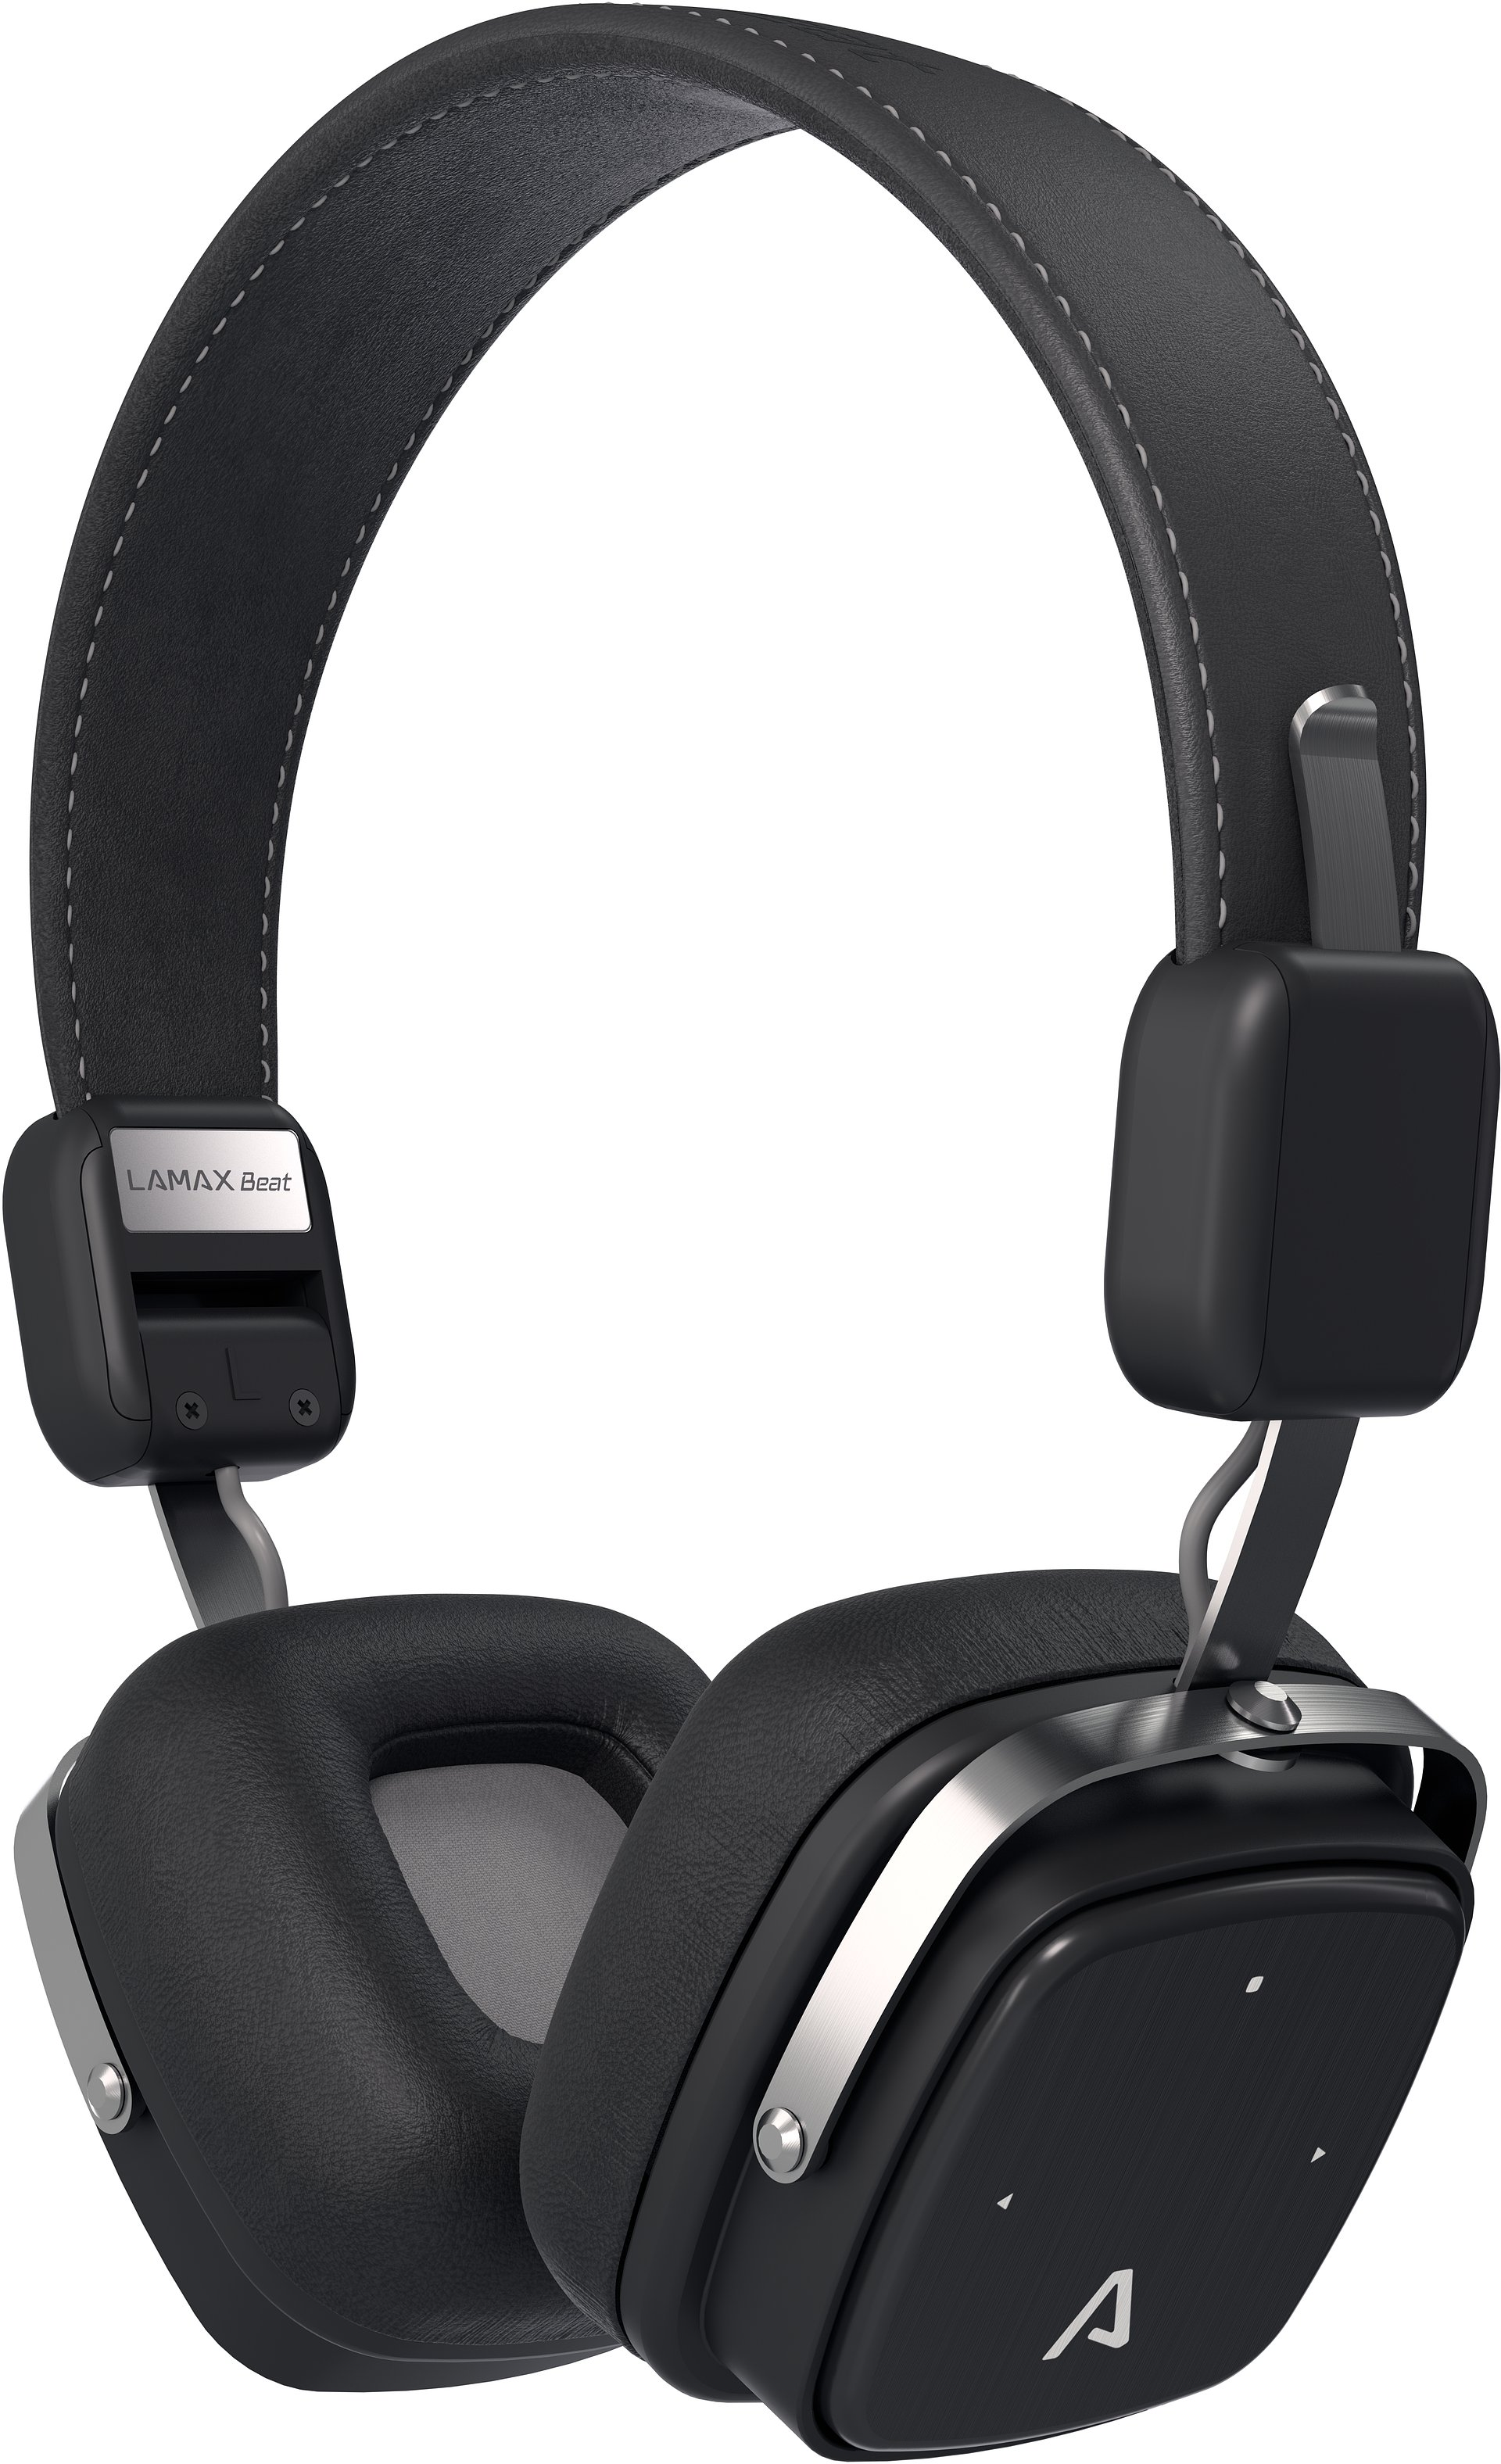 LAMAX Elite E-1 Black